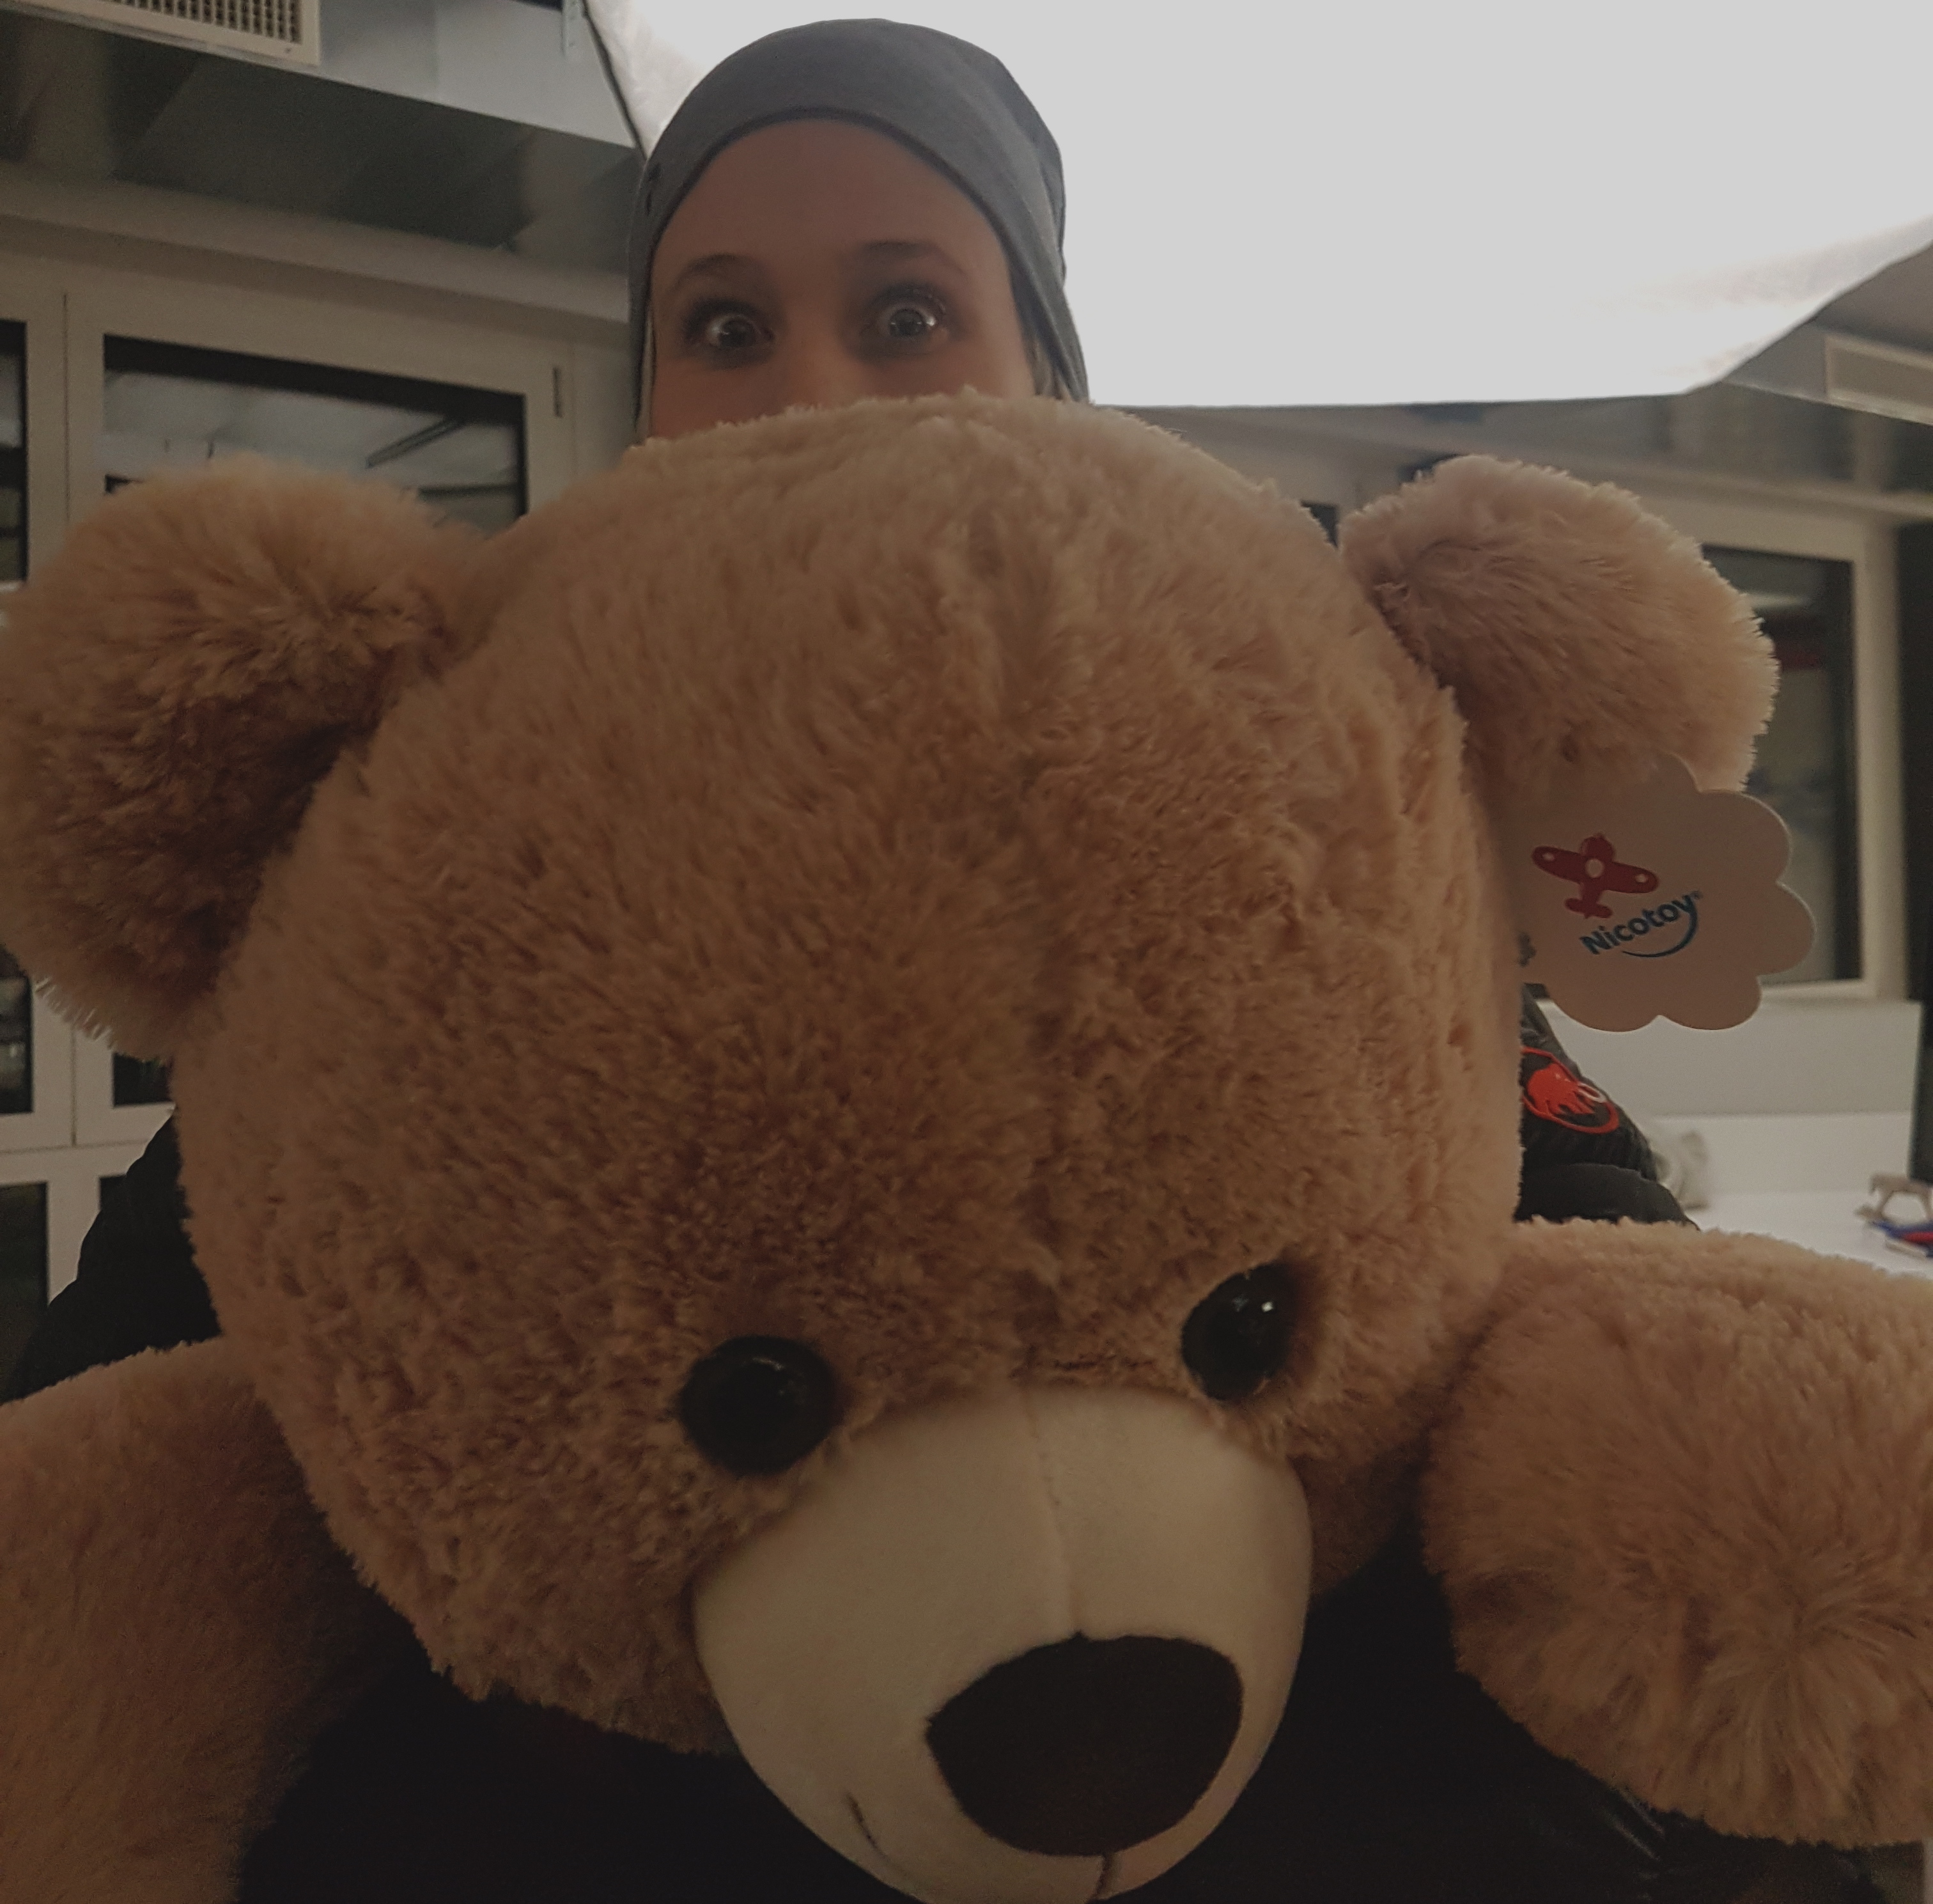 Nicole and her Teddy